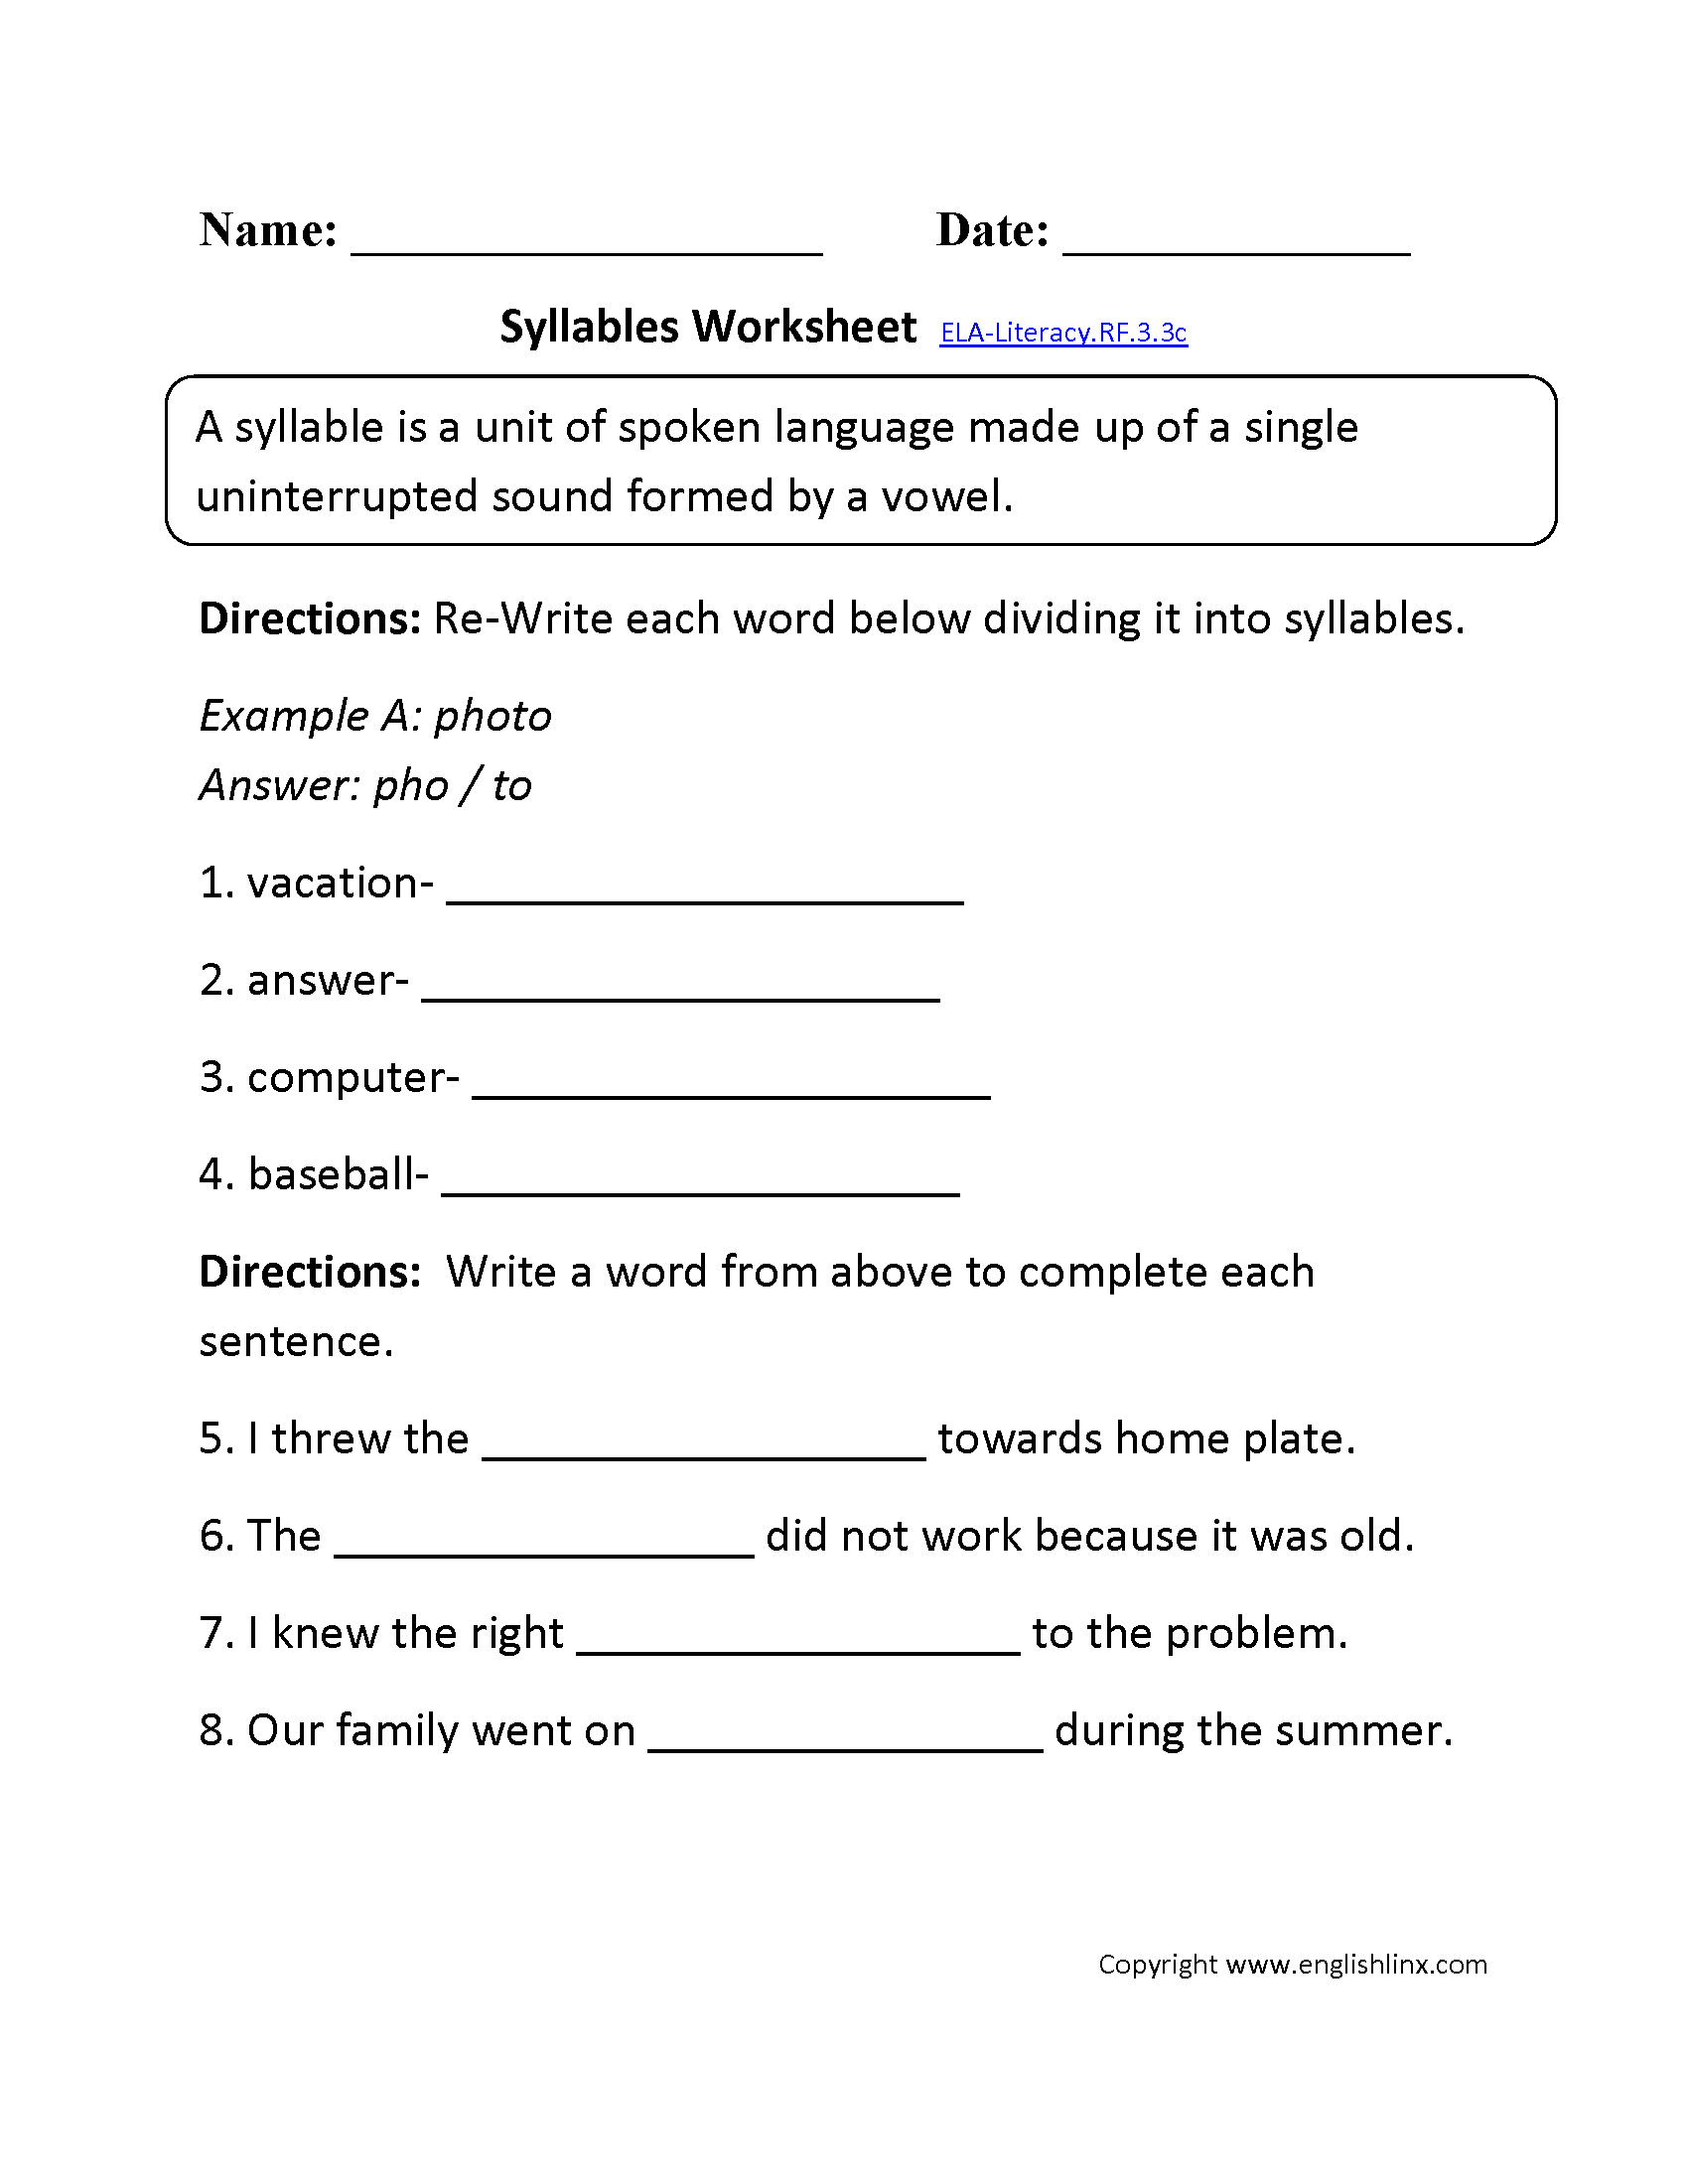 worksheet 3rd Grade Phonics Worksheets 3rd grade common core reading foundational skills worksheets syllables worksheet 2 ela literacy rf 3 3c skills